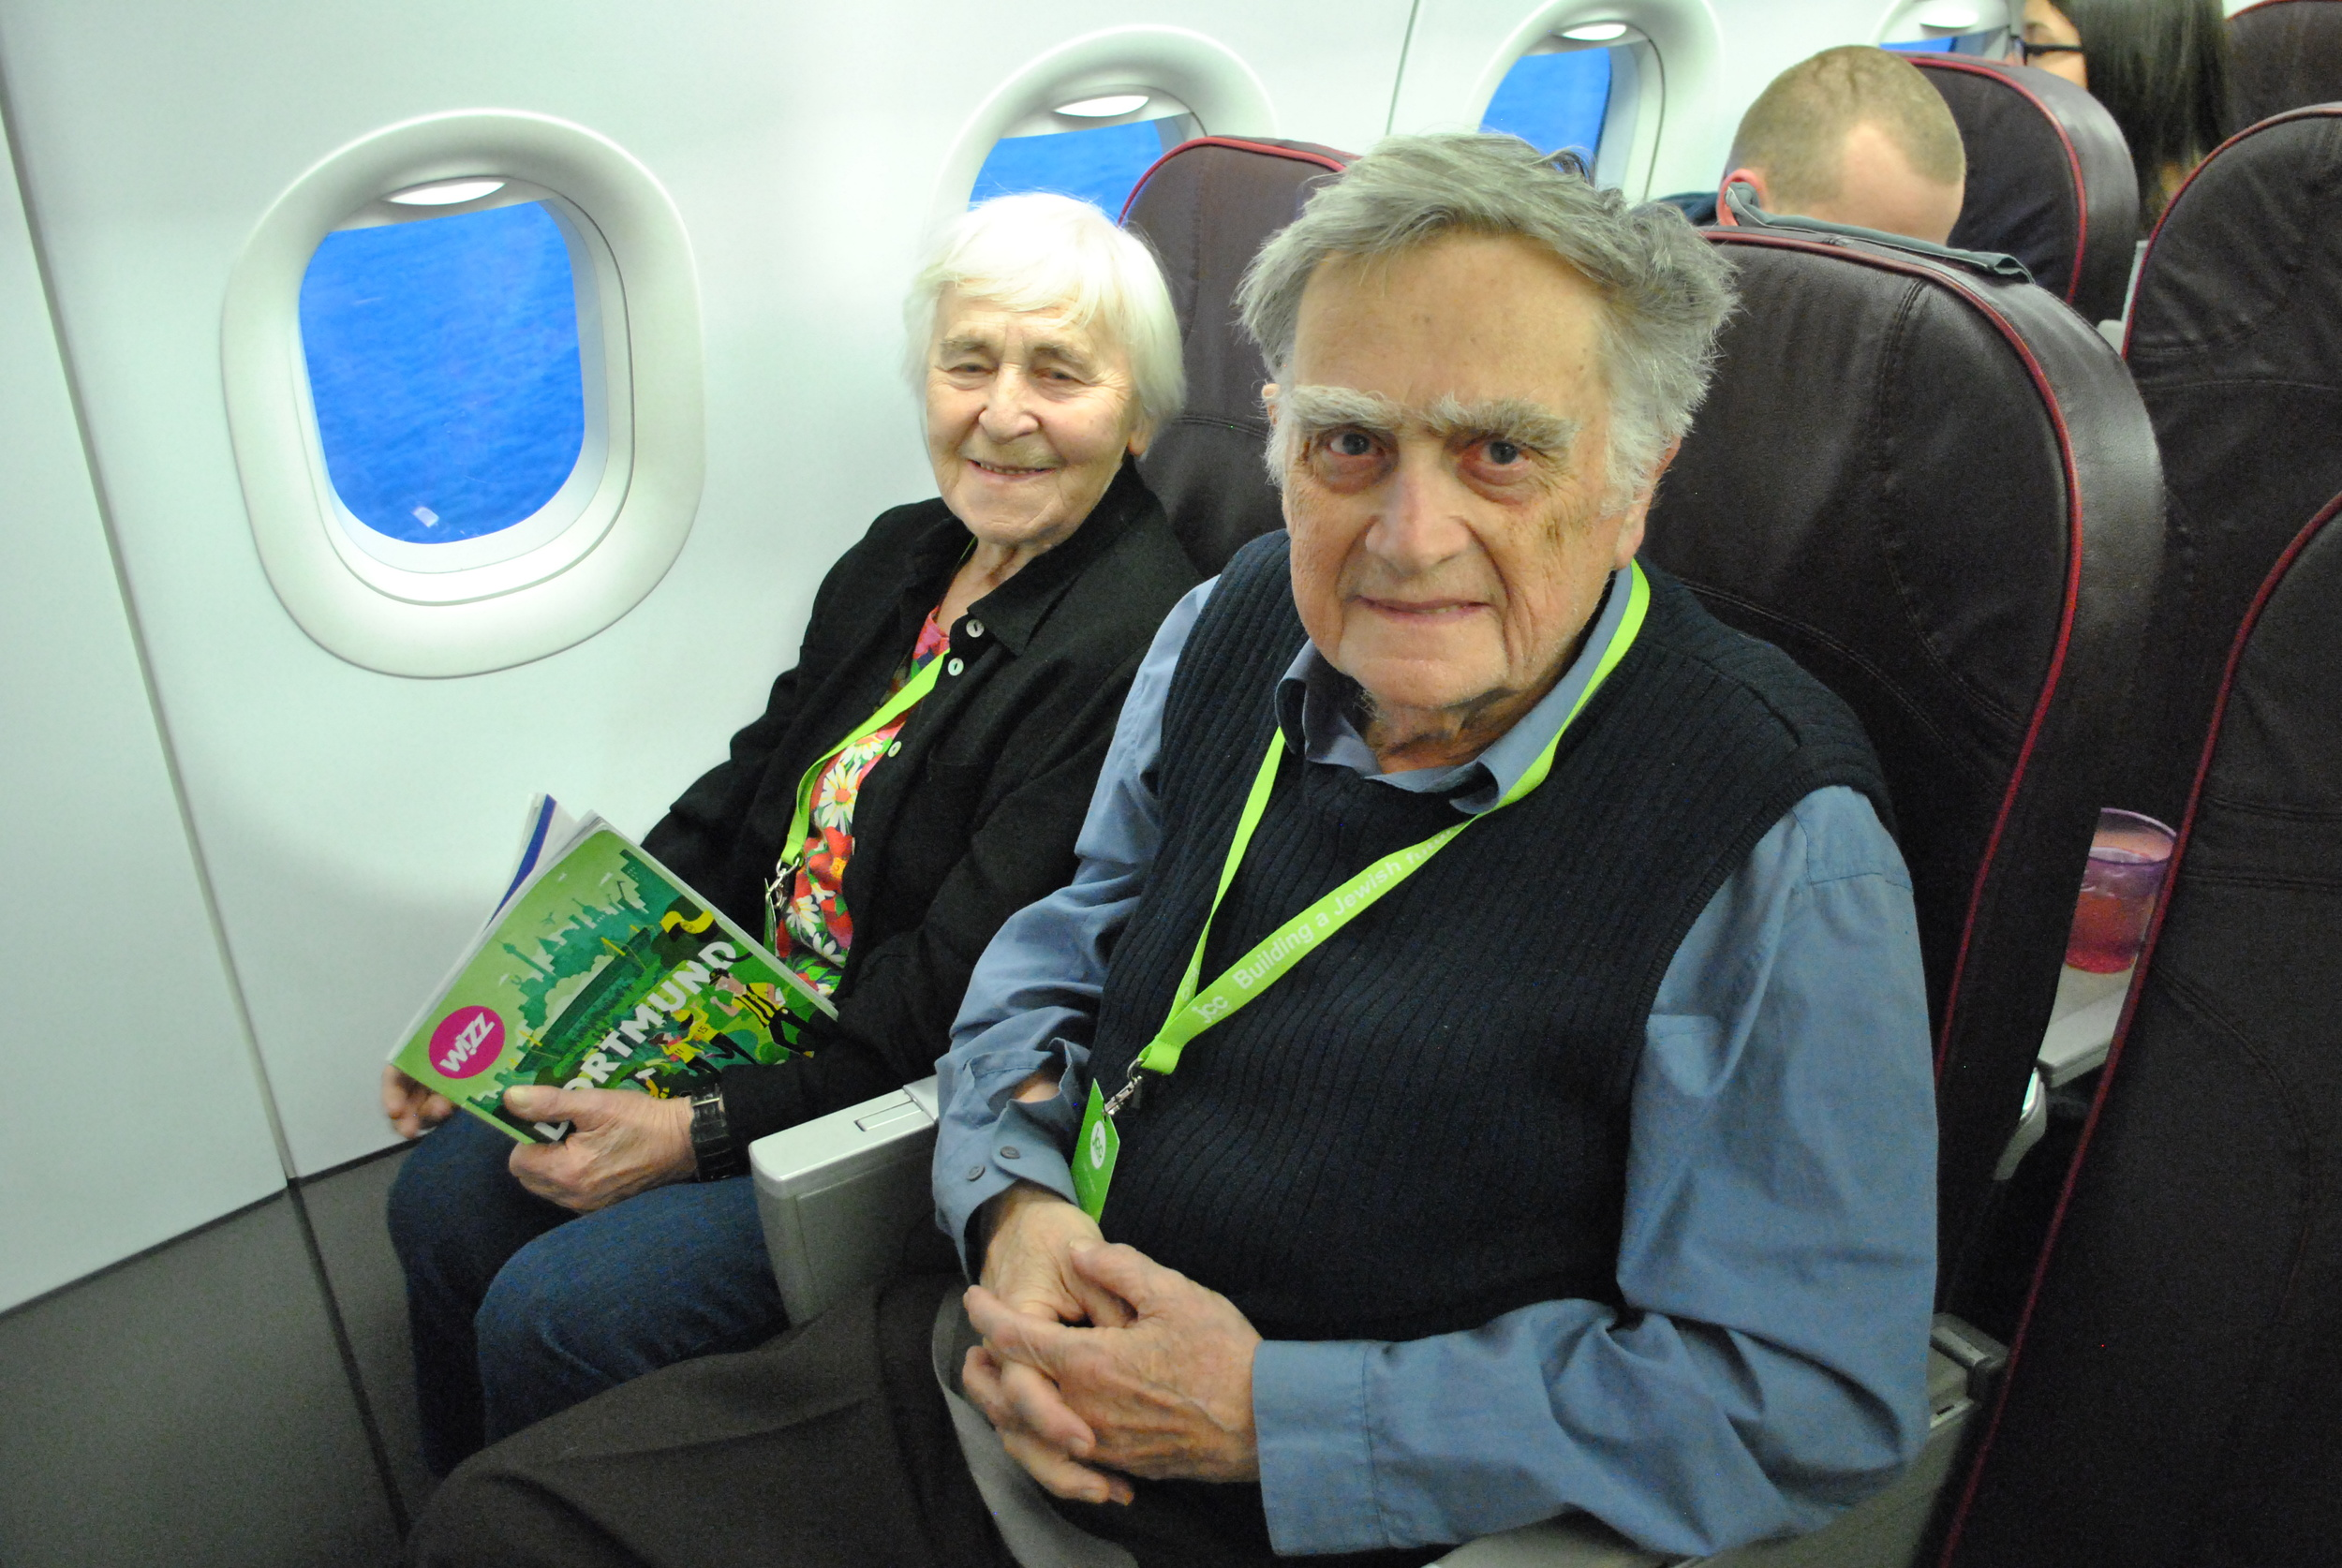 For many of our Holocaust survivor members, like Kalina and Jan, this trip is their first chance to visit Israel.